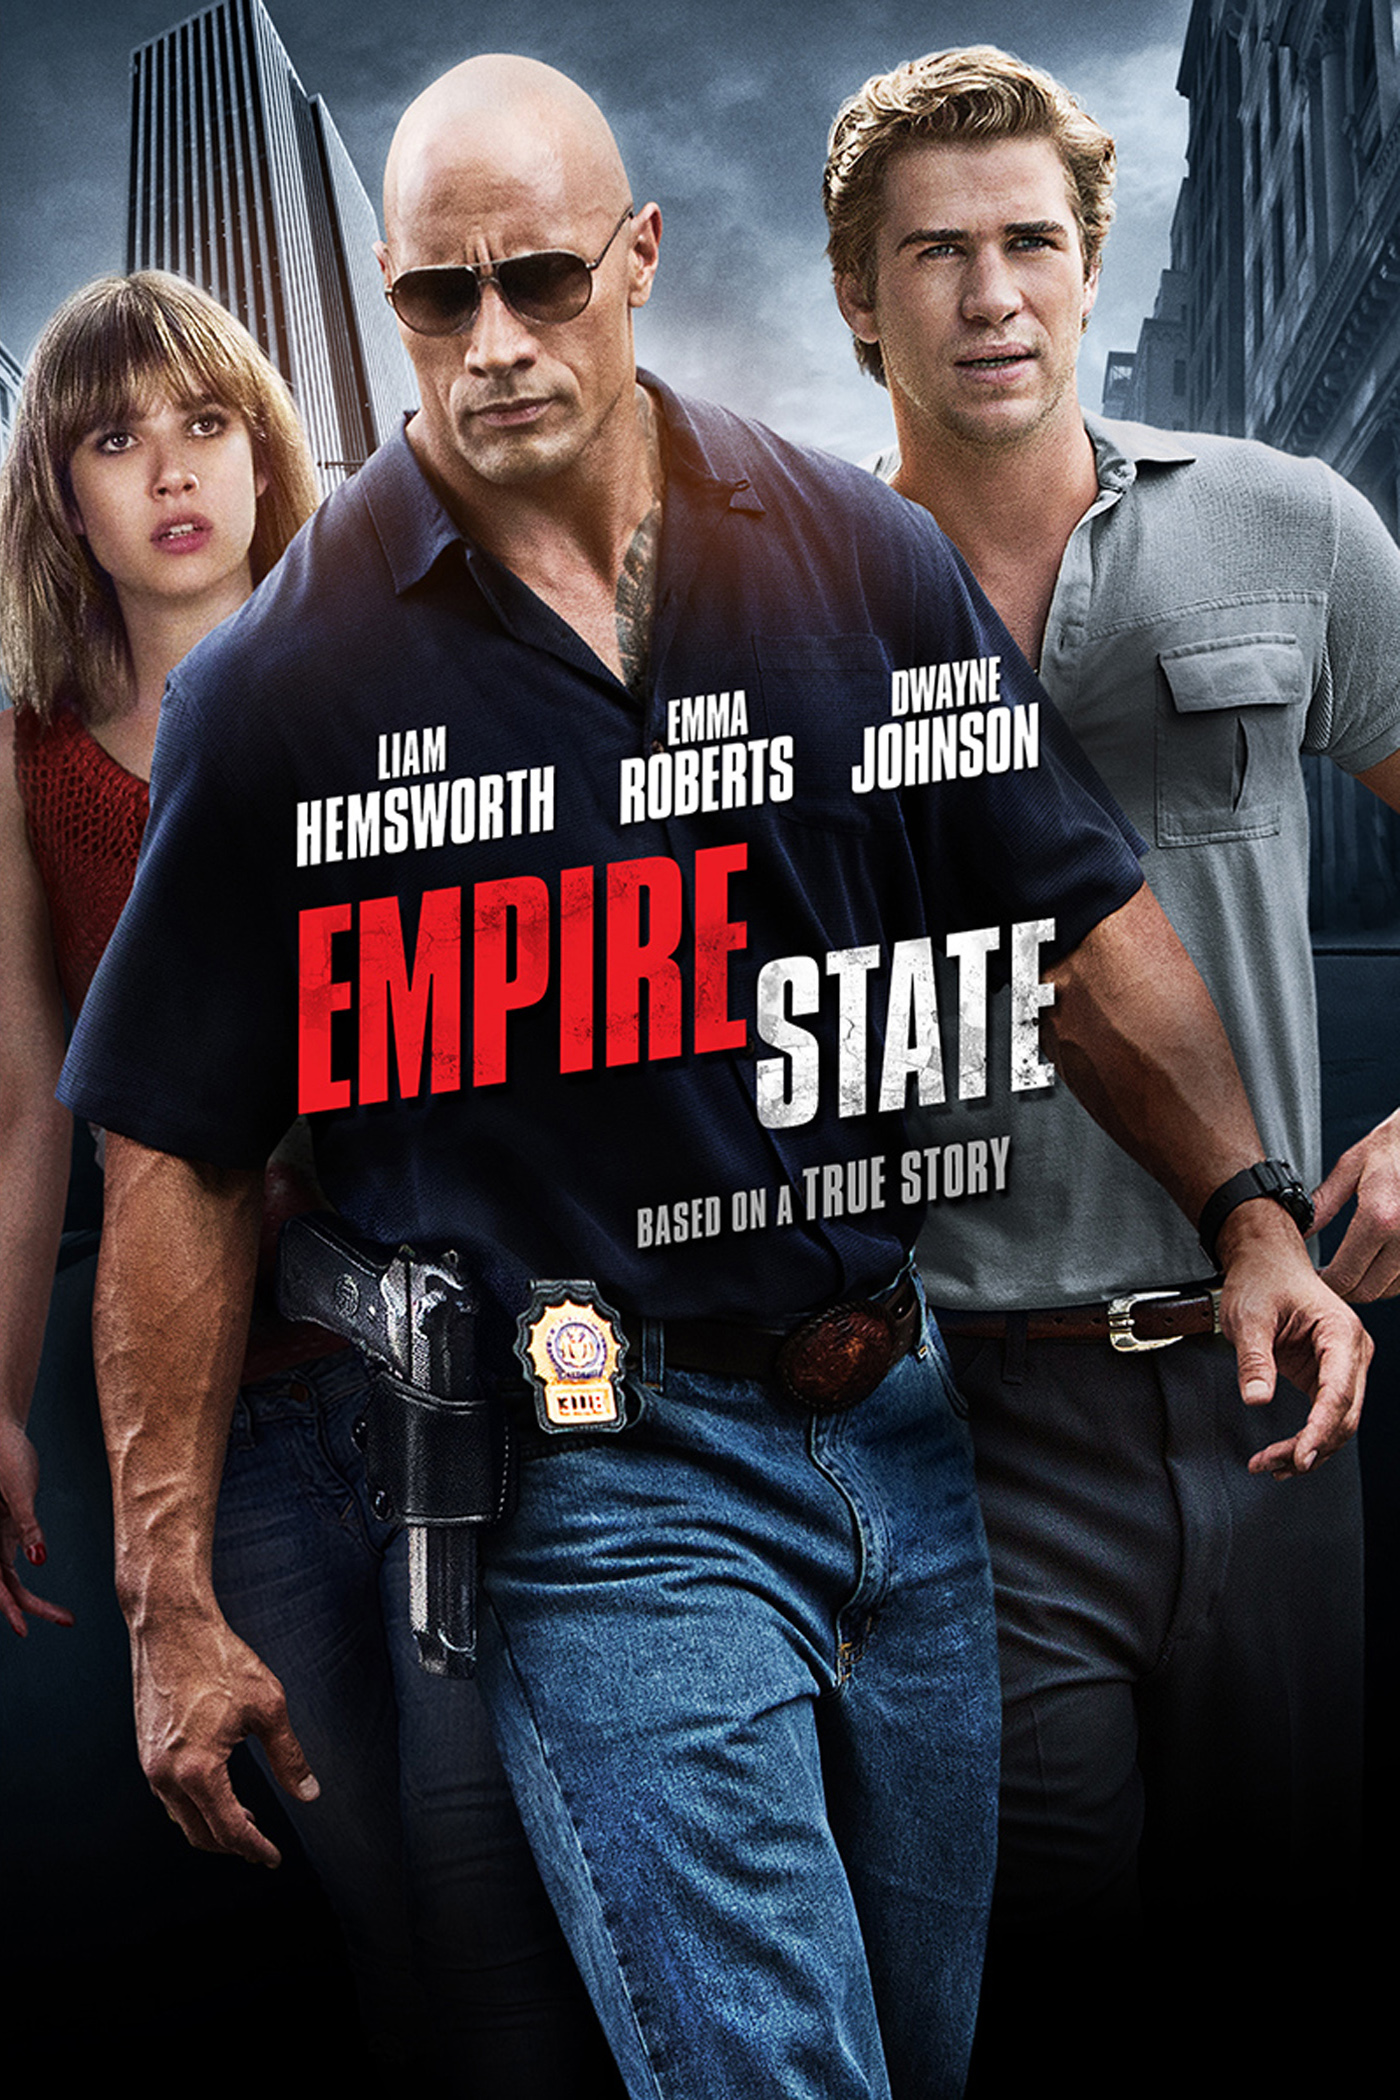 Empire State Movie Poster iTunes - Movies - Empi...